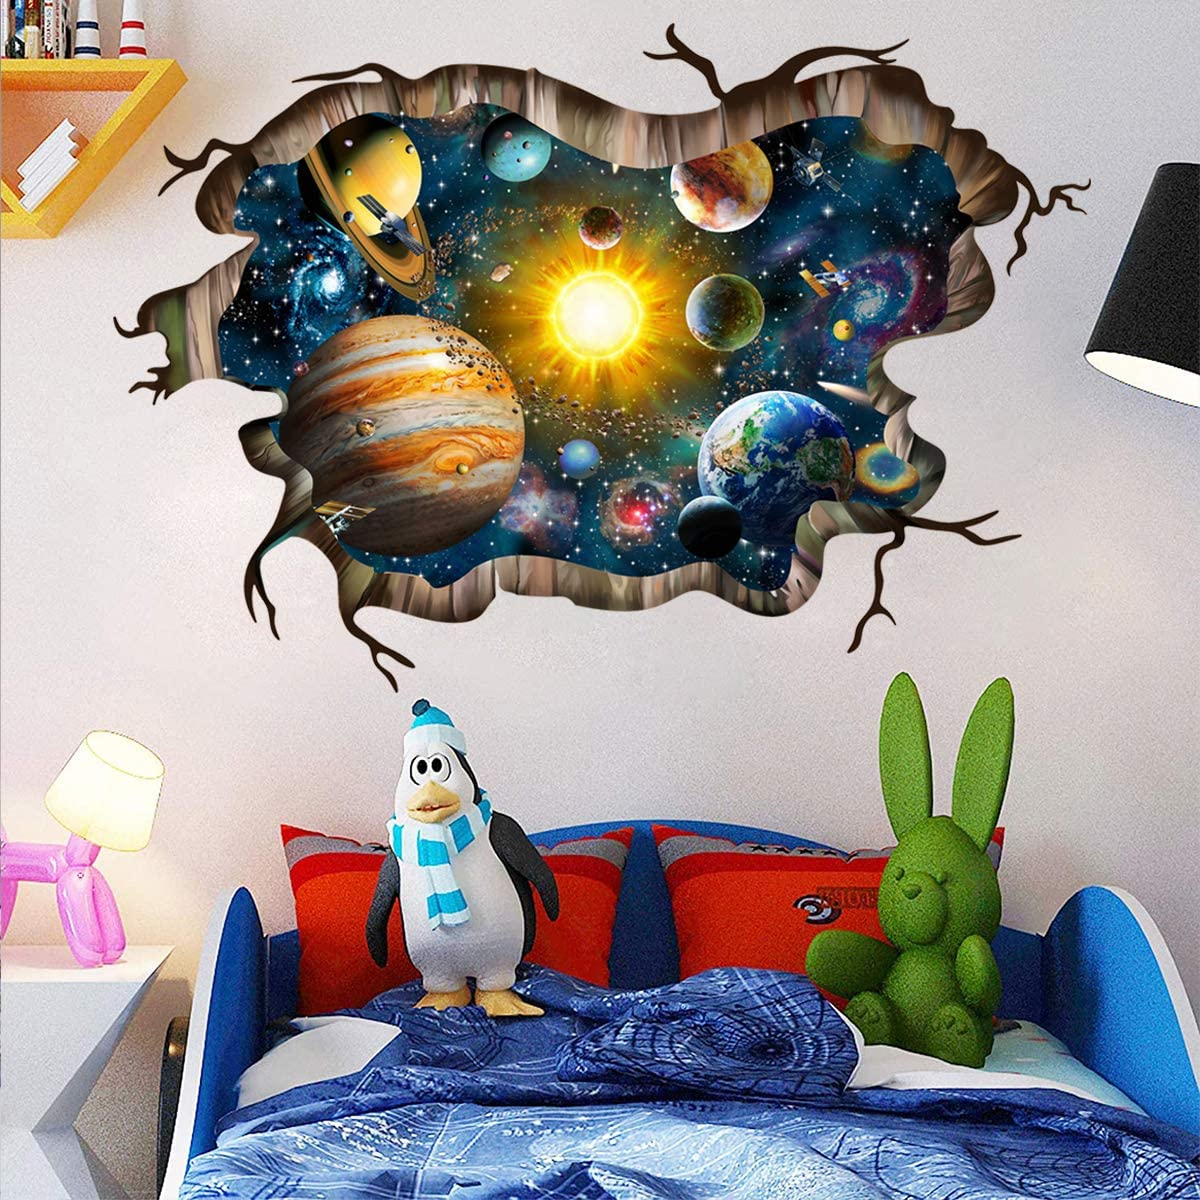 Universe Galaxy Wall Decals , DIY Peel and Stick Removable Art Murals 3D Milky Way Outer Space Planet,The Art Dreamscape Home Decor Muralsfor Home Walls Floor Ceiling Boys Room Kids Bedroom